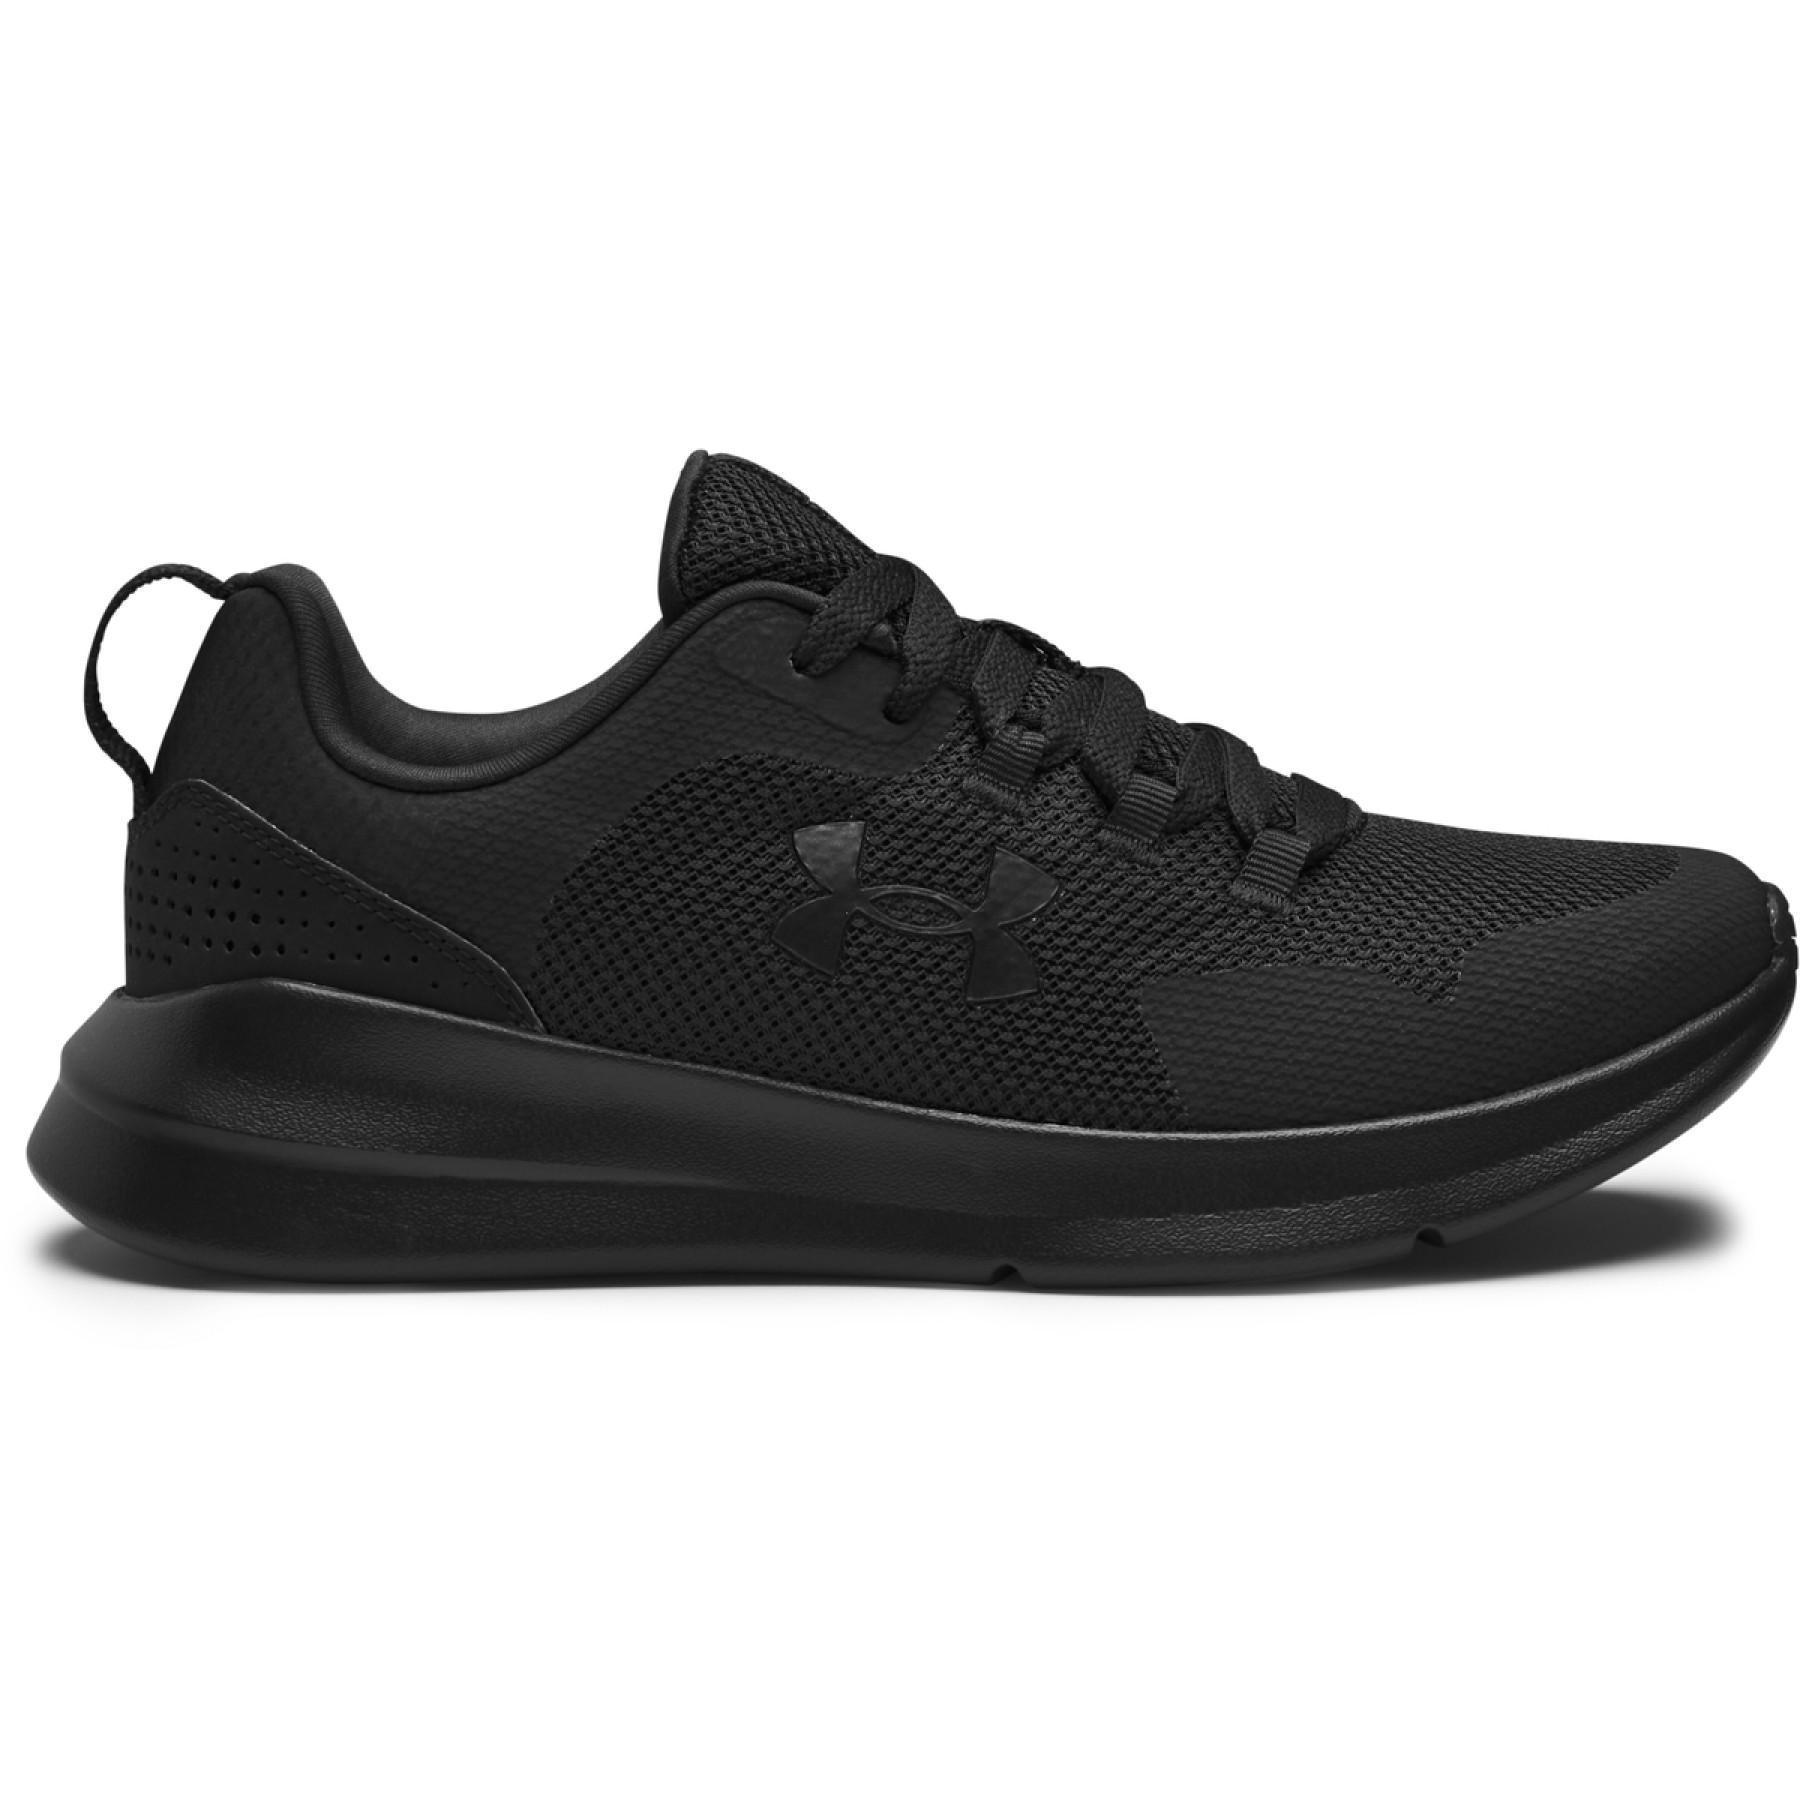 Under Armour Essential Sportstyle Women's Shoes